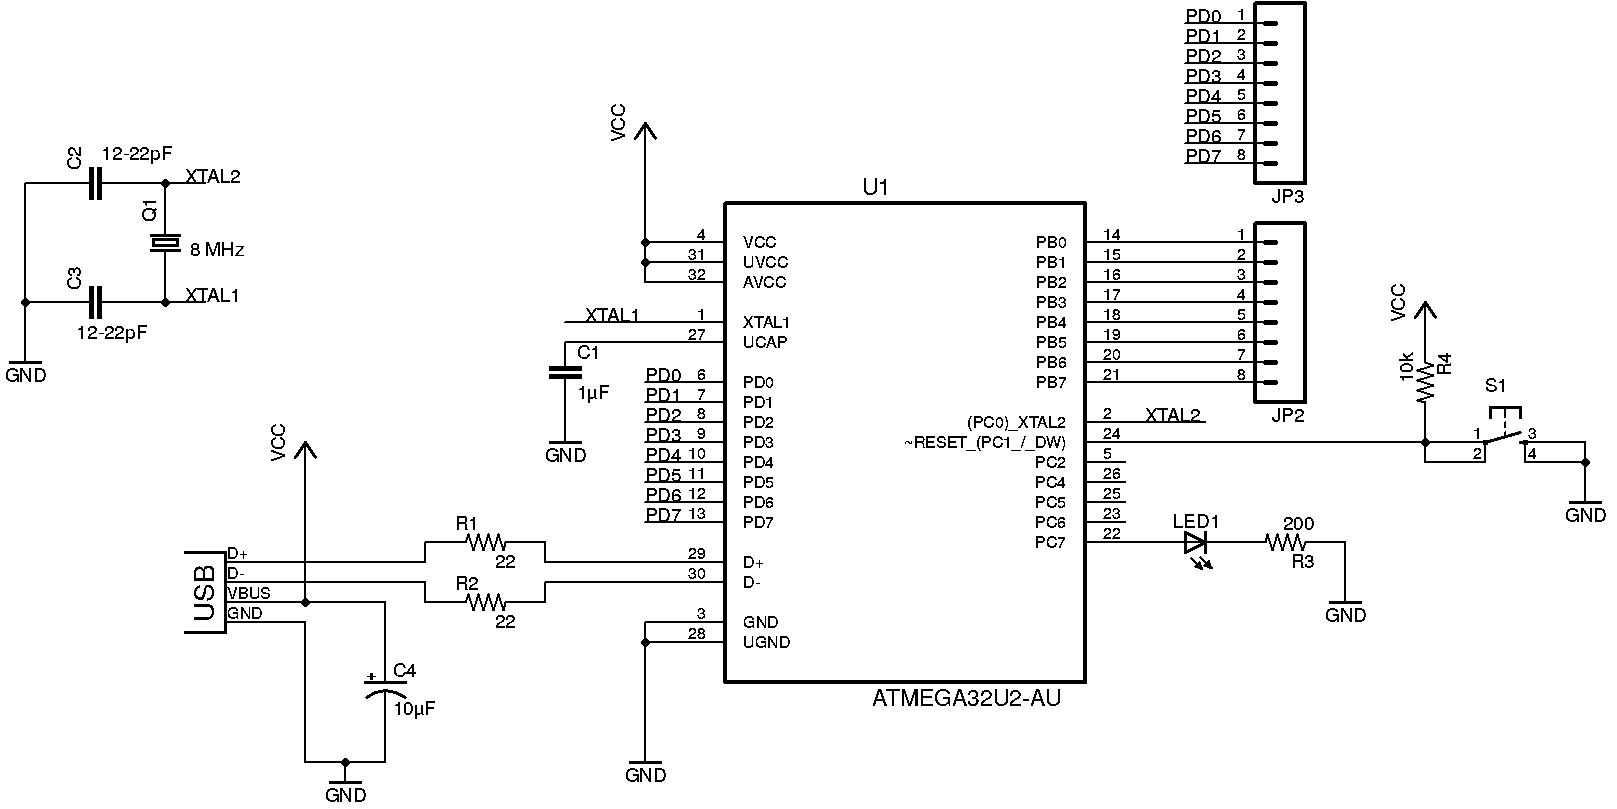 Microcontroller Tutorial 3 5 How To Design The Circuit Schematic Diagrams For Circuits Atmega32u2 With Values